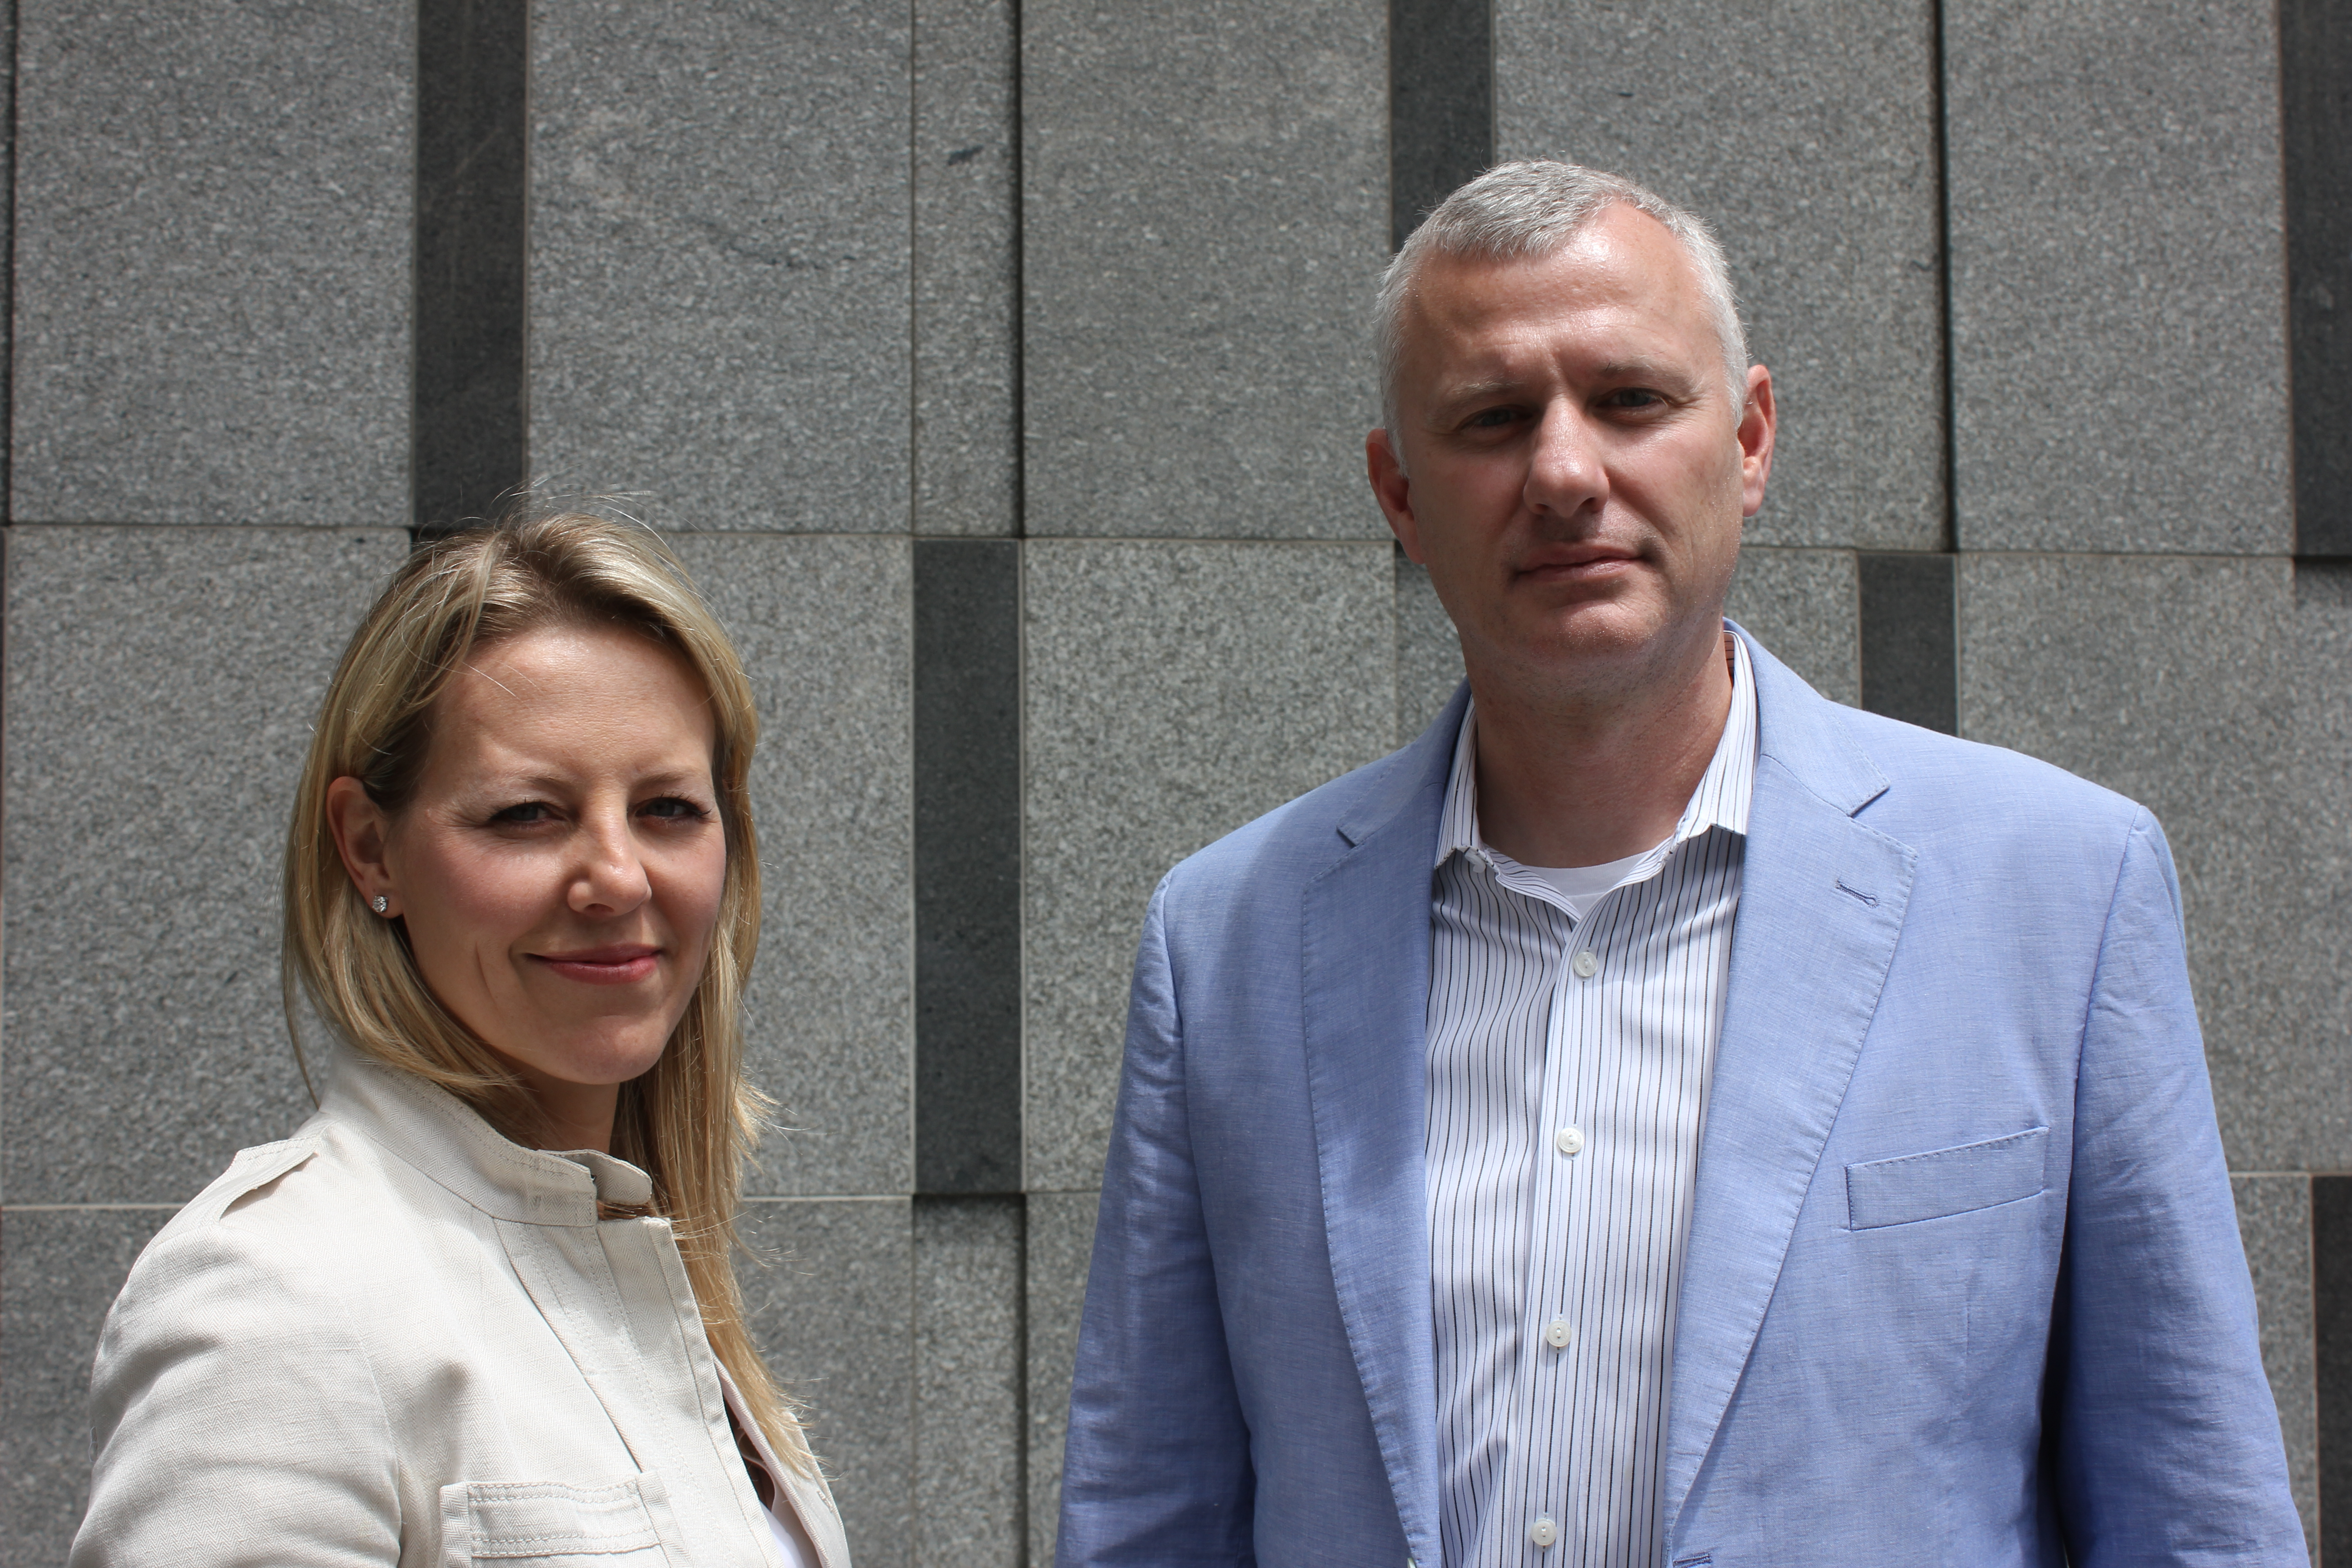 Kathryn Haun (left) and William Frentzen are assistant United States attorneys based in San Francisco.